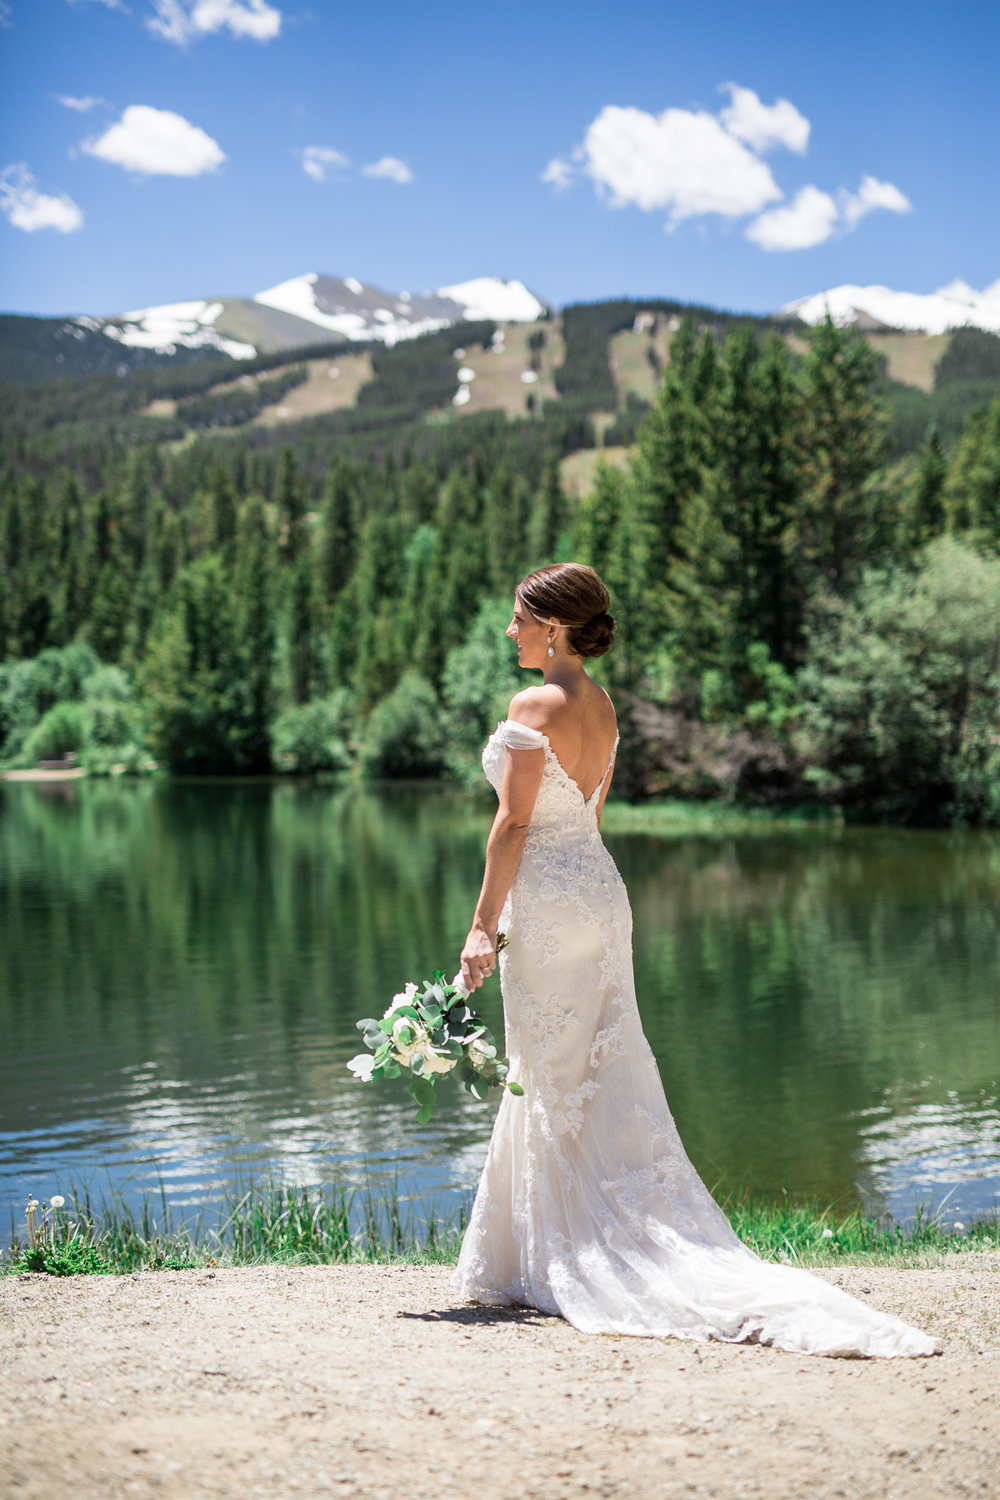 StaciDesign-Colorado-Wedding-3823.jpg